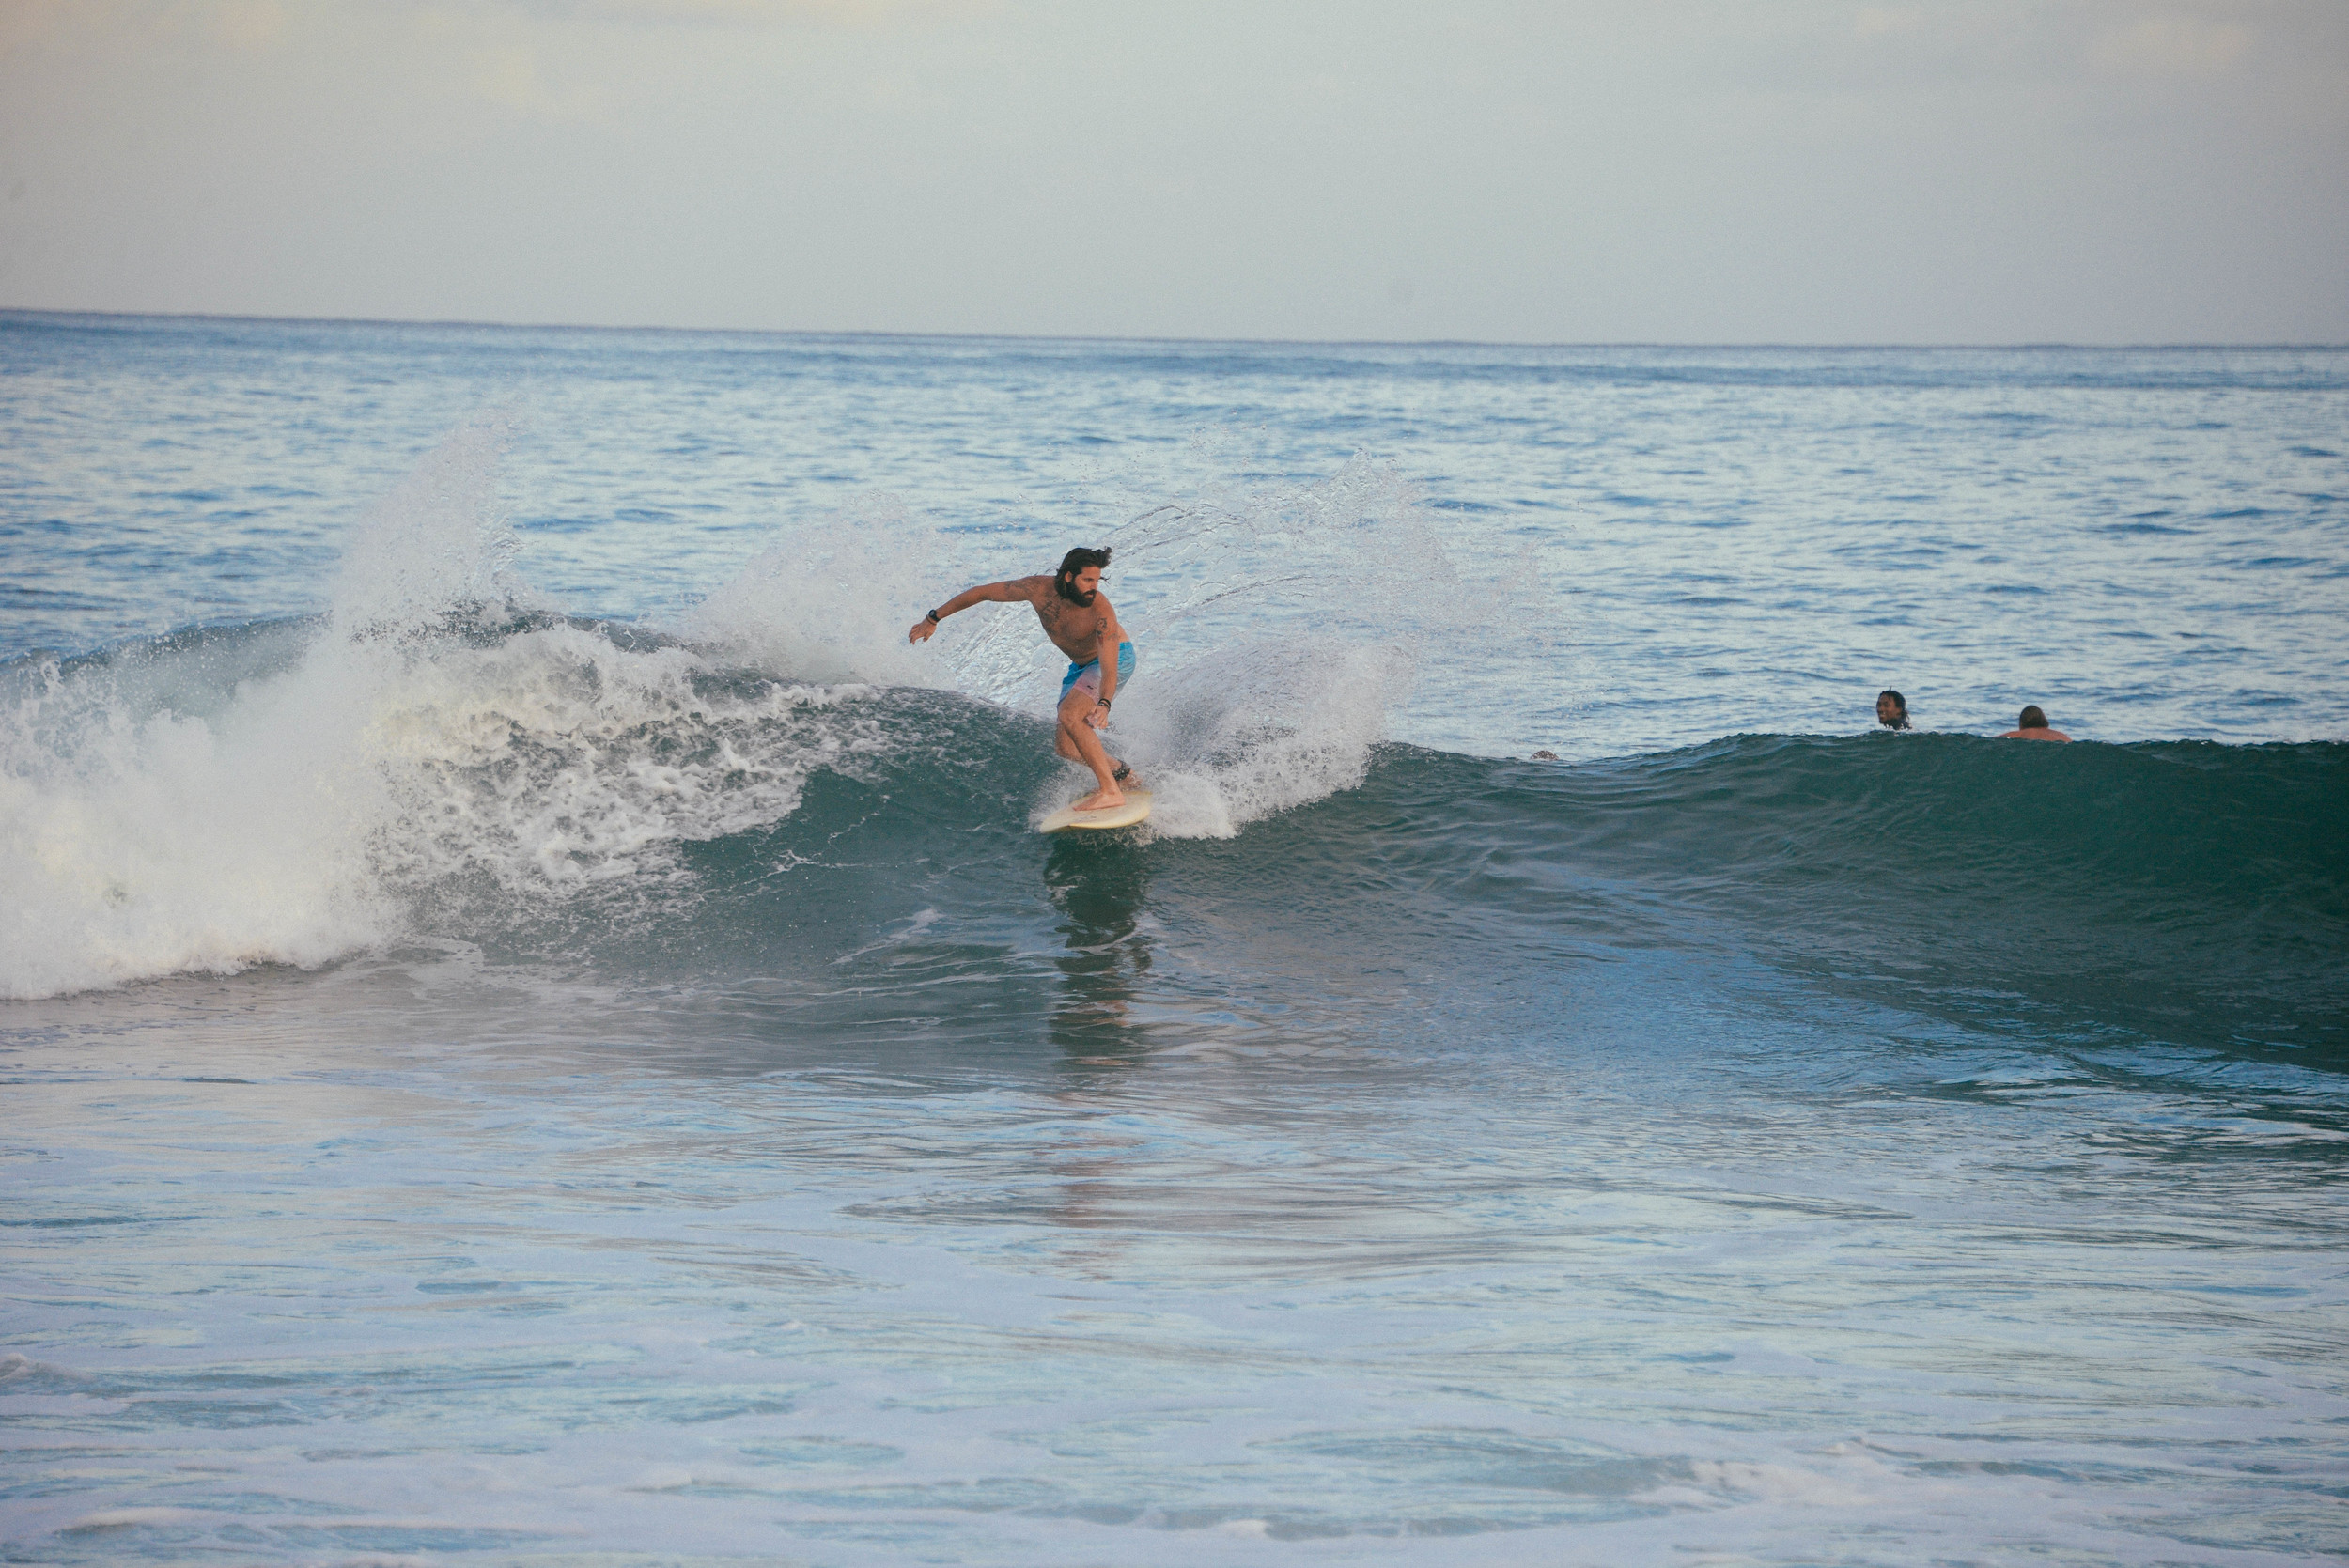 Jonny surfing Rocky Point on the North Shore, Oahu.